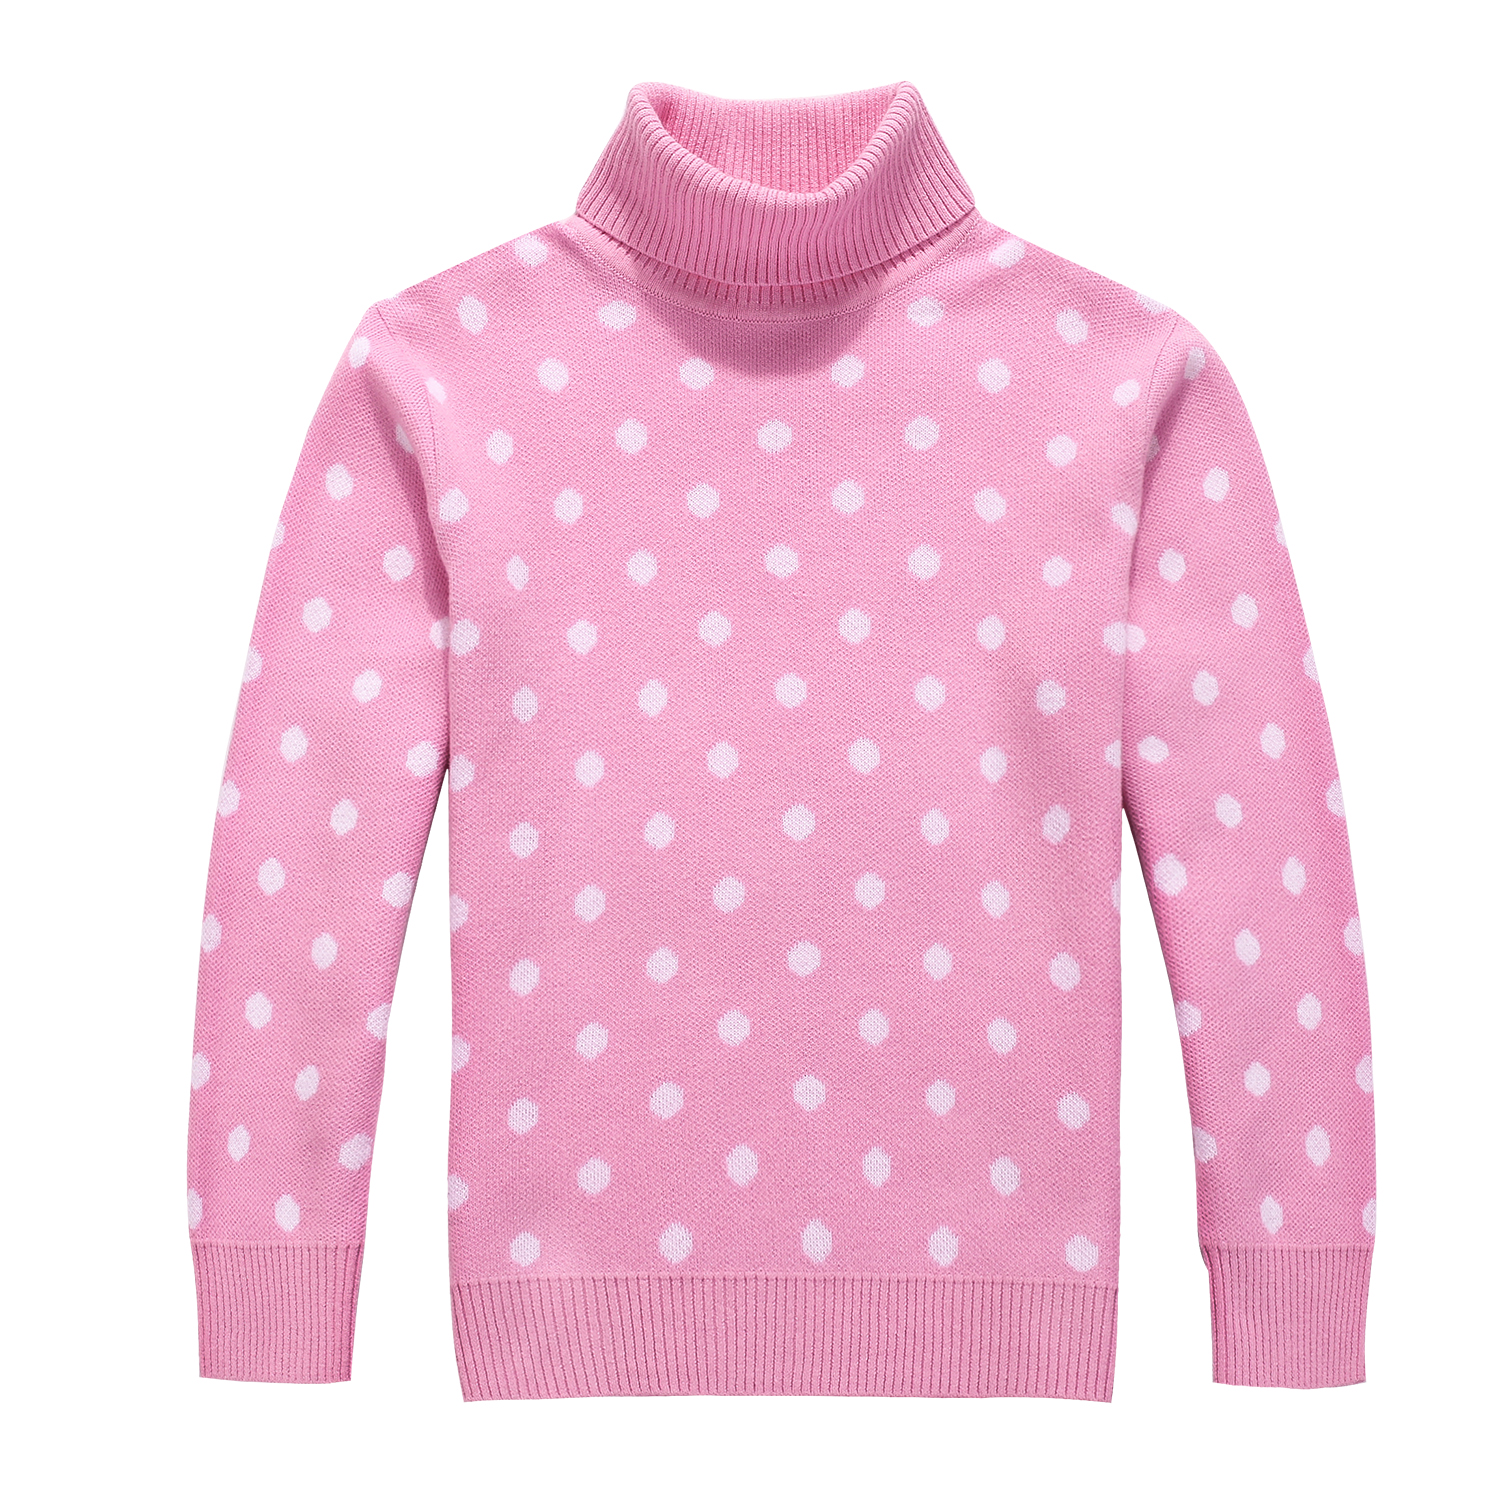 Spring and Autumn Girl 100% Cotton Dots Pattern Princess Turtleneck Sweater Children's Clothing Pullover Sweater for Girls-in Sweaters from Mother & Kids